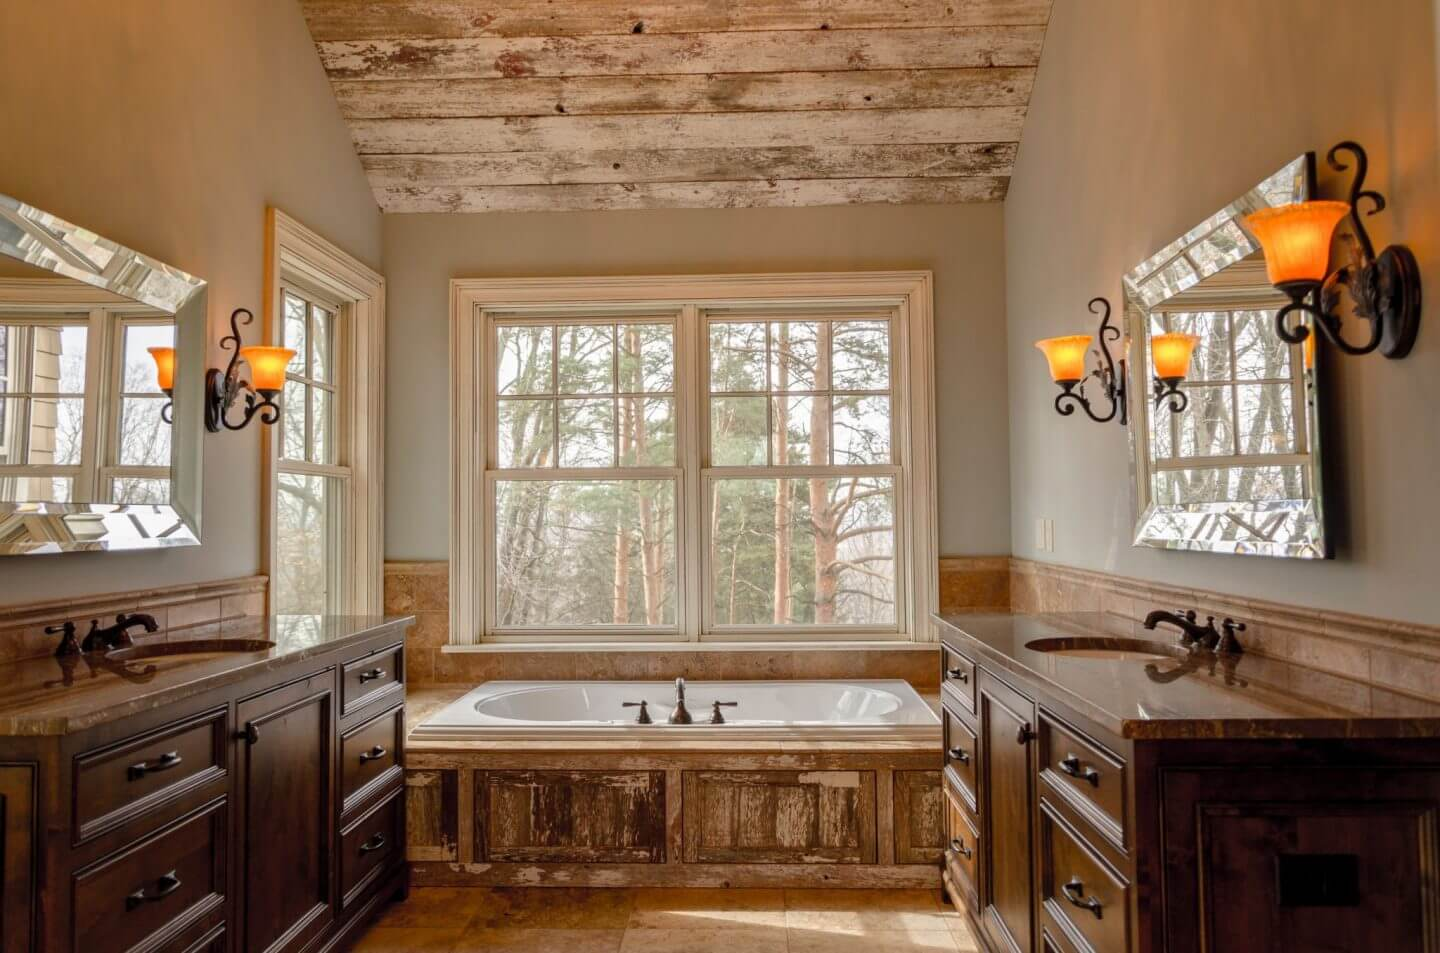 Oriental-style bathroom with raised bath